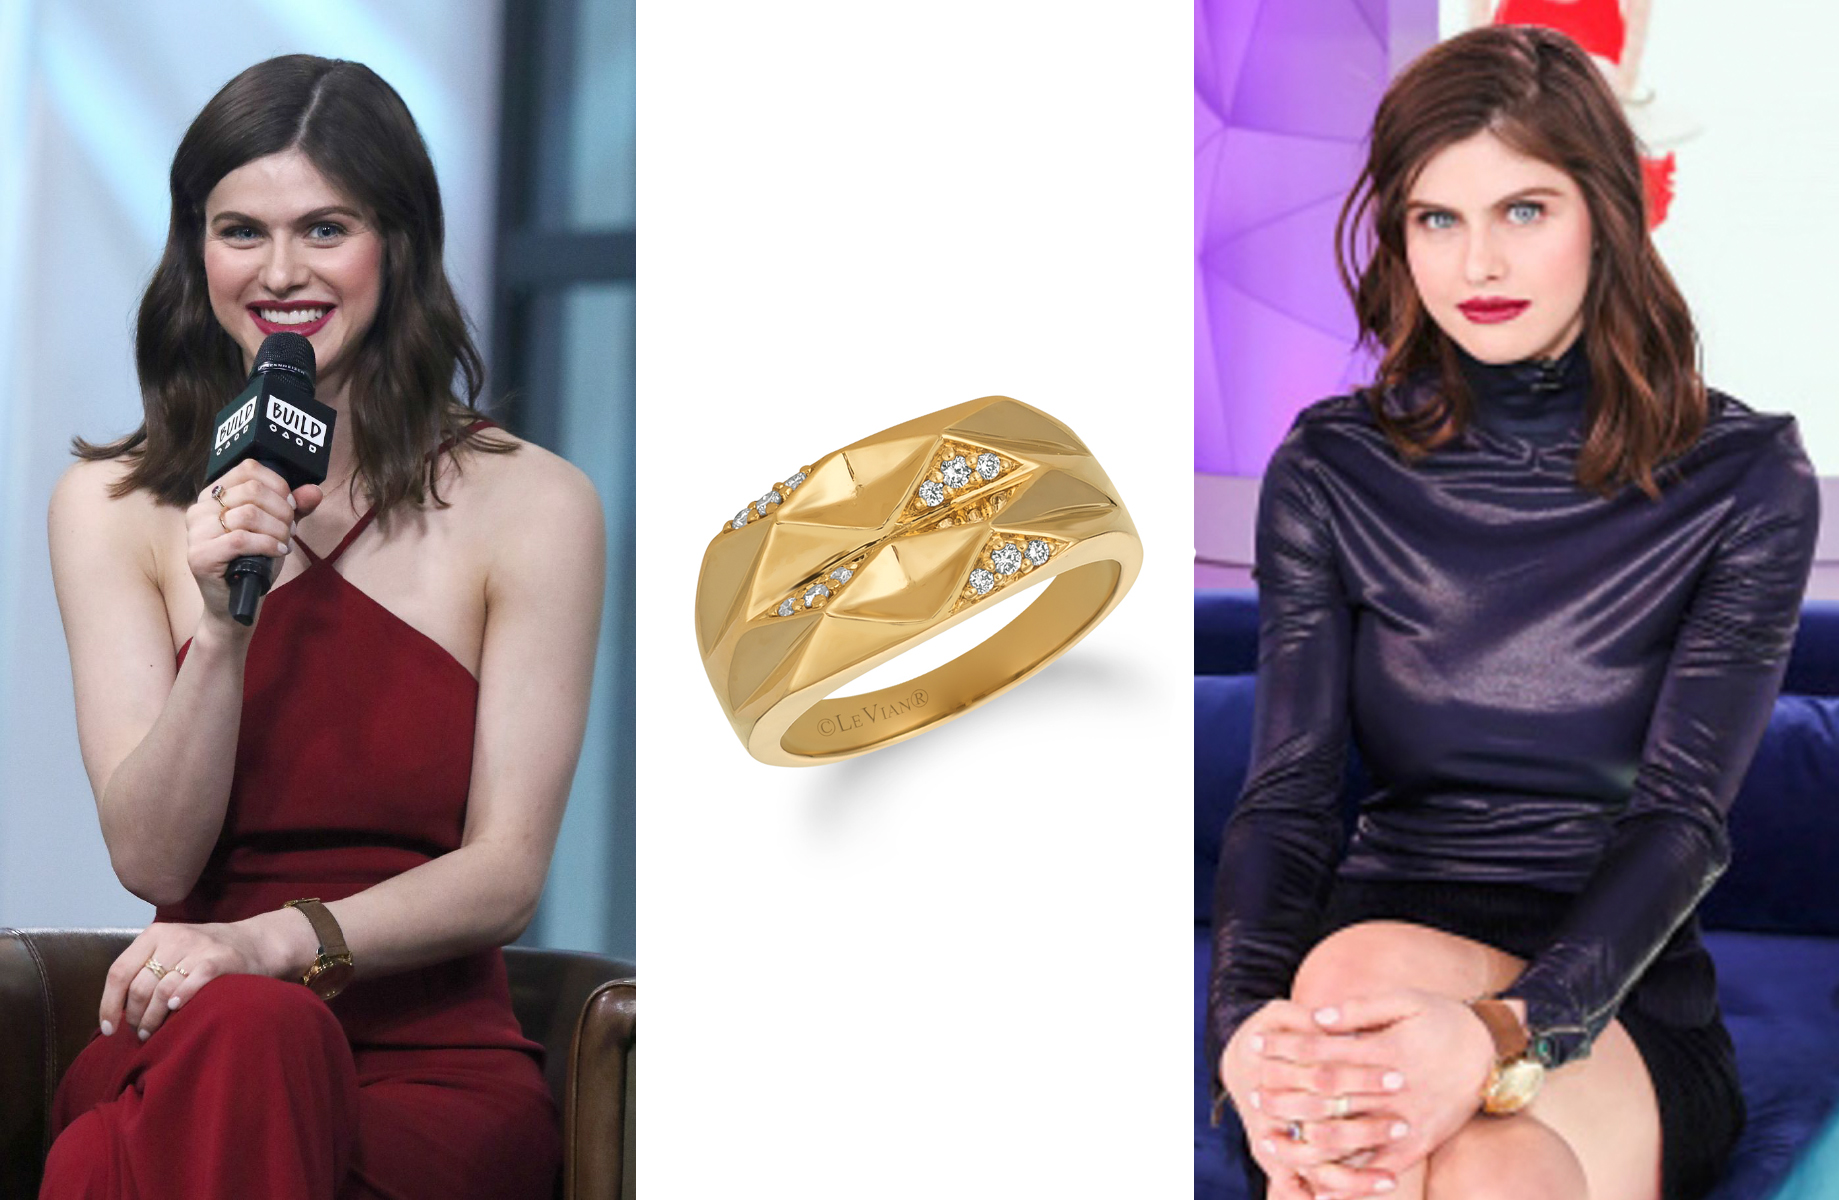 Alexandra Daddario Wearing a Le Vian Ring in NYC